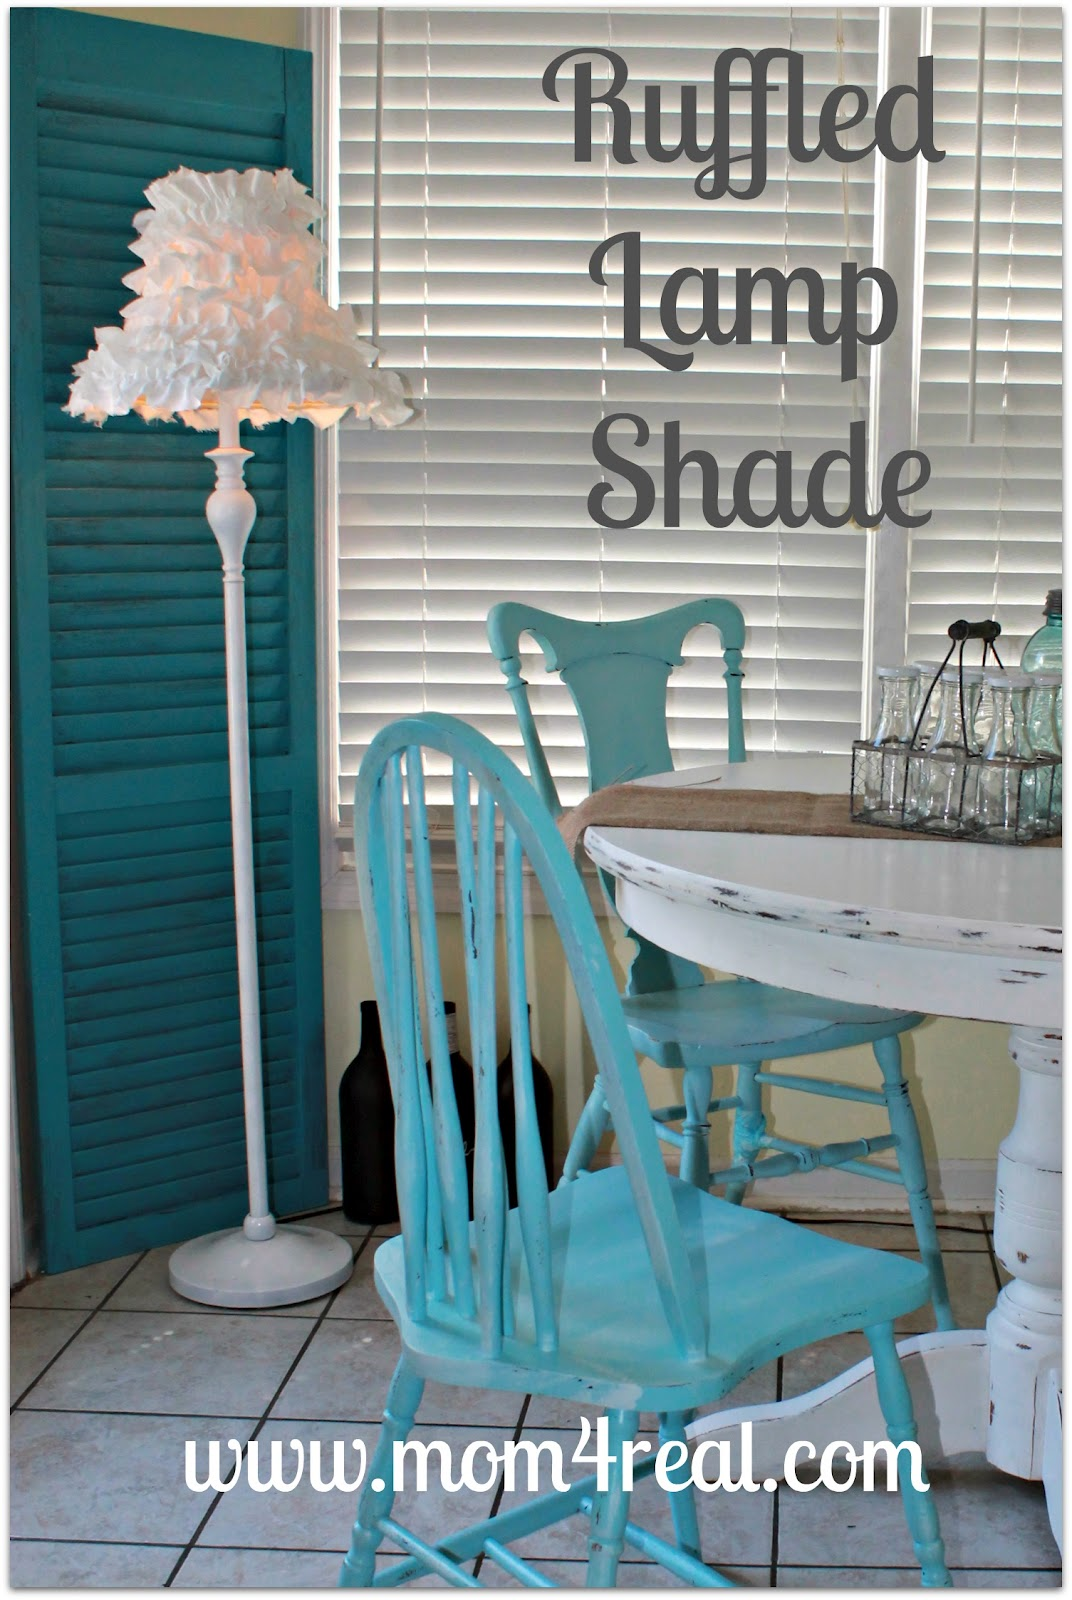 Ruffled lamp shade mom 4 real ruffled lamp shade mozeypictures Gallery